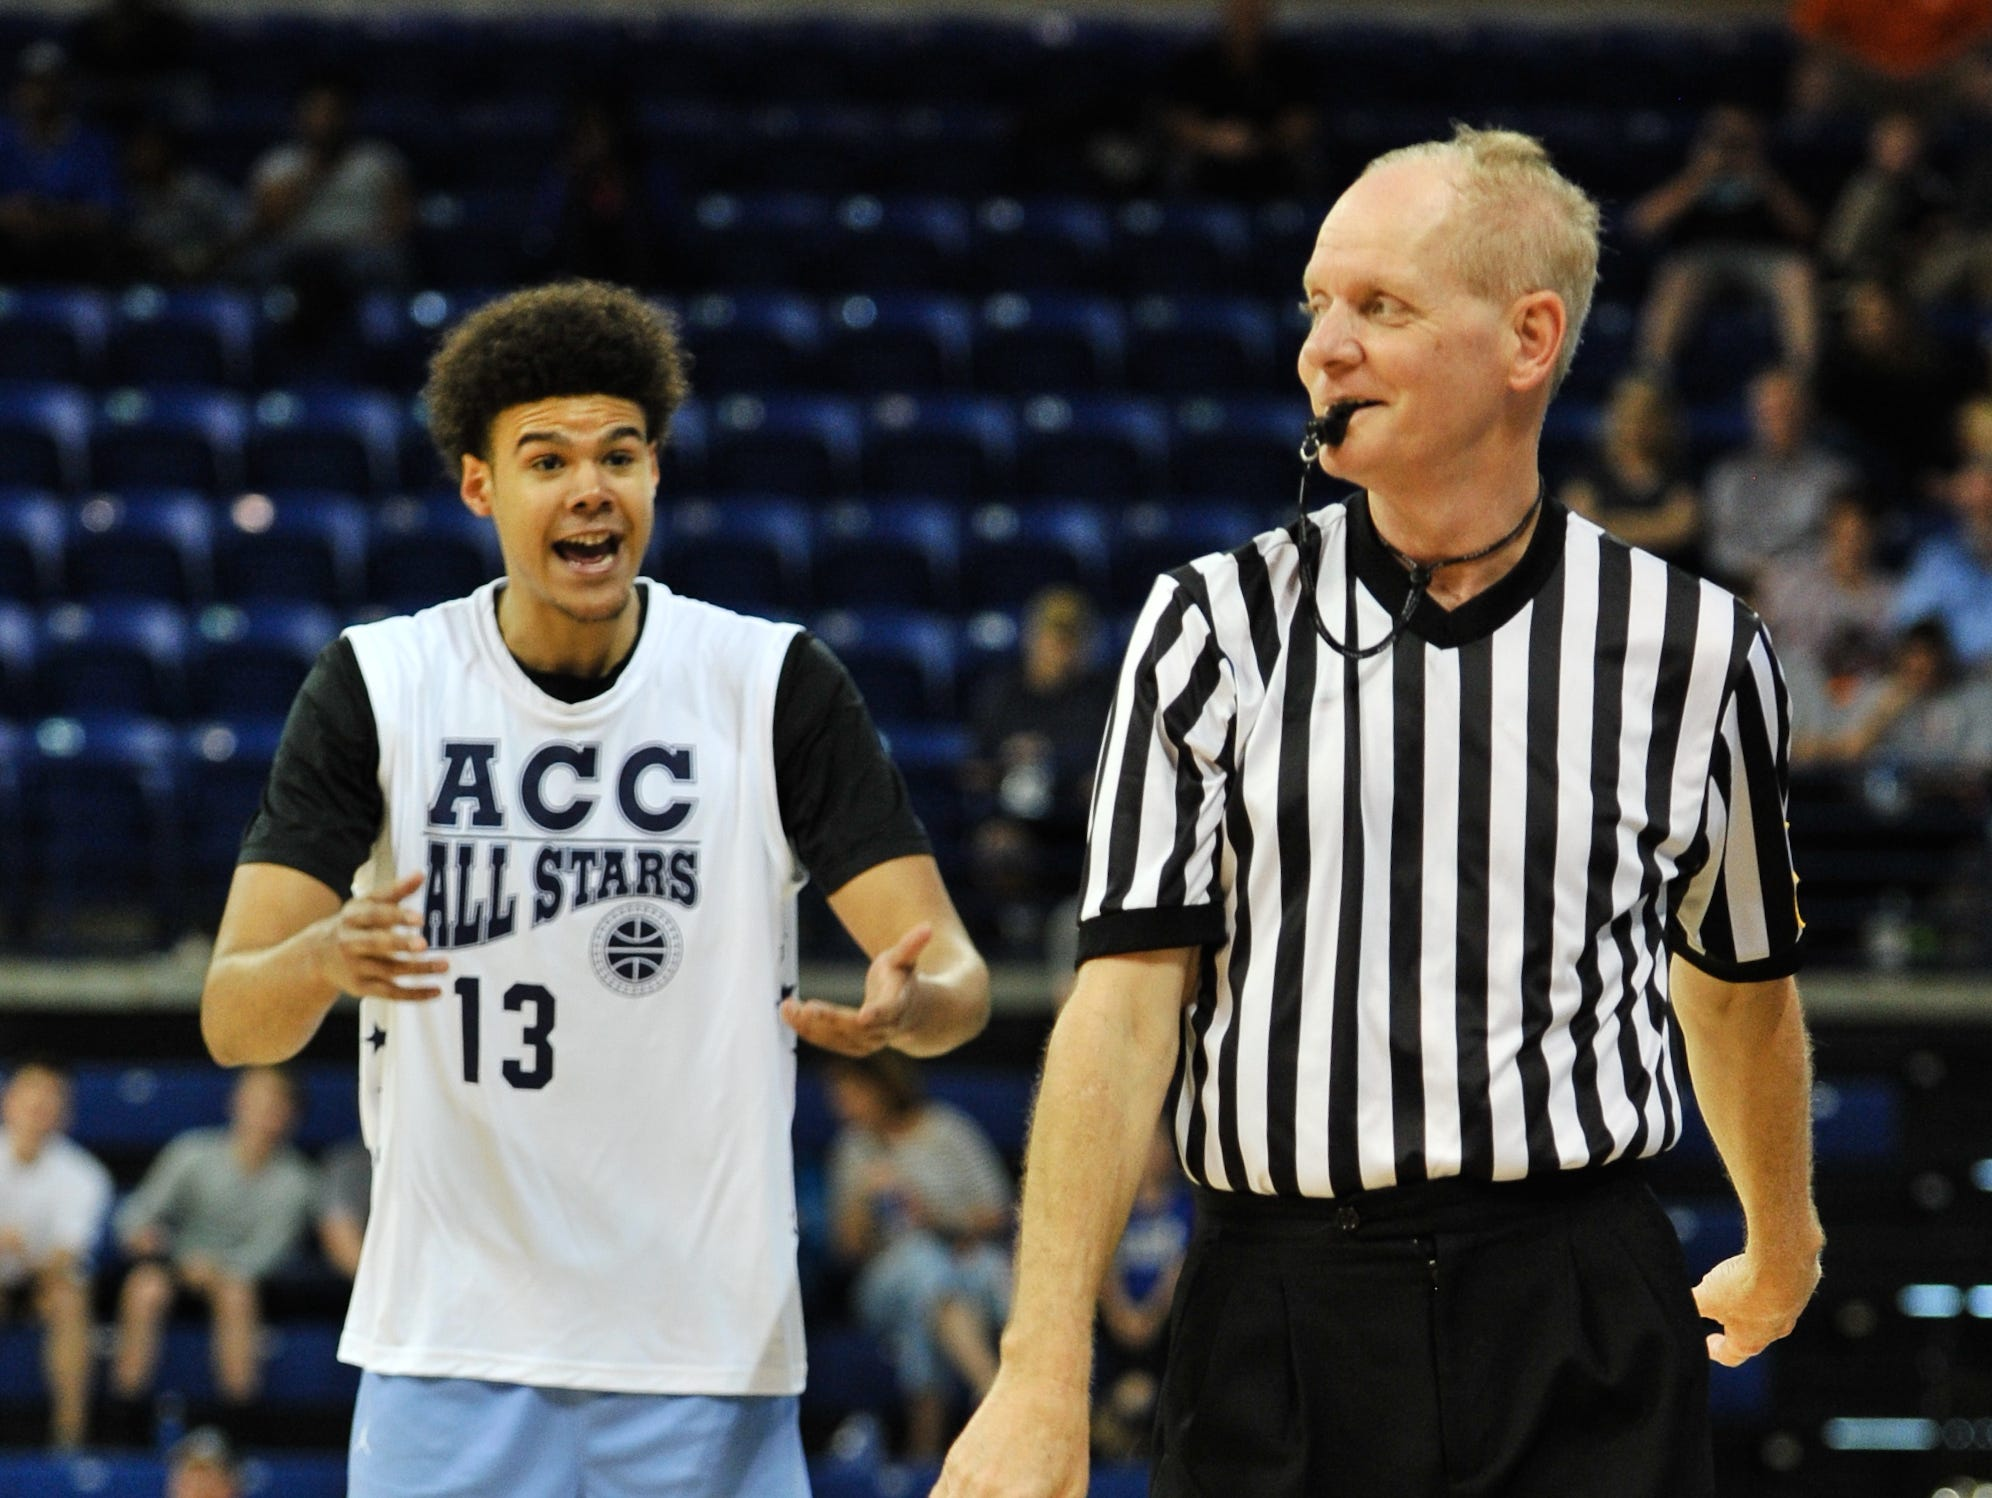 The annual Crossfire ACC All-Stars basketball game was April 14, 2019, at Kimmel Arena.